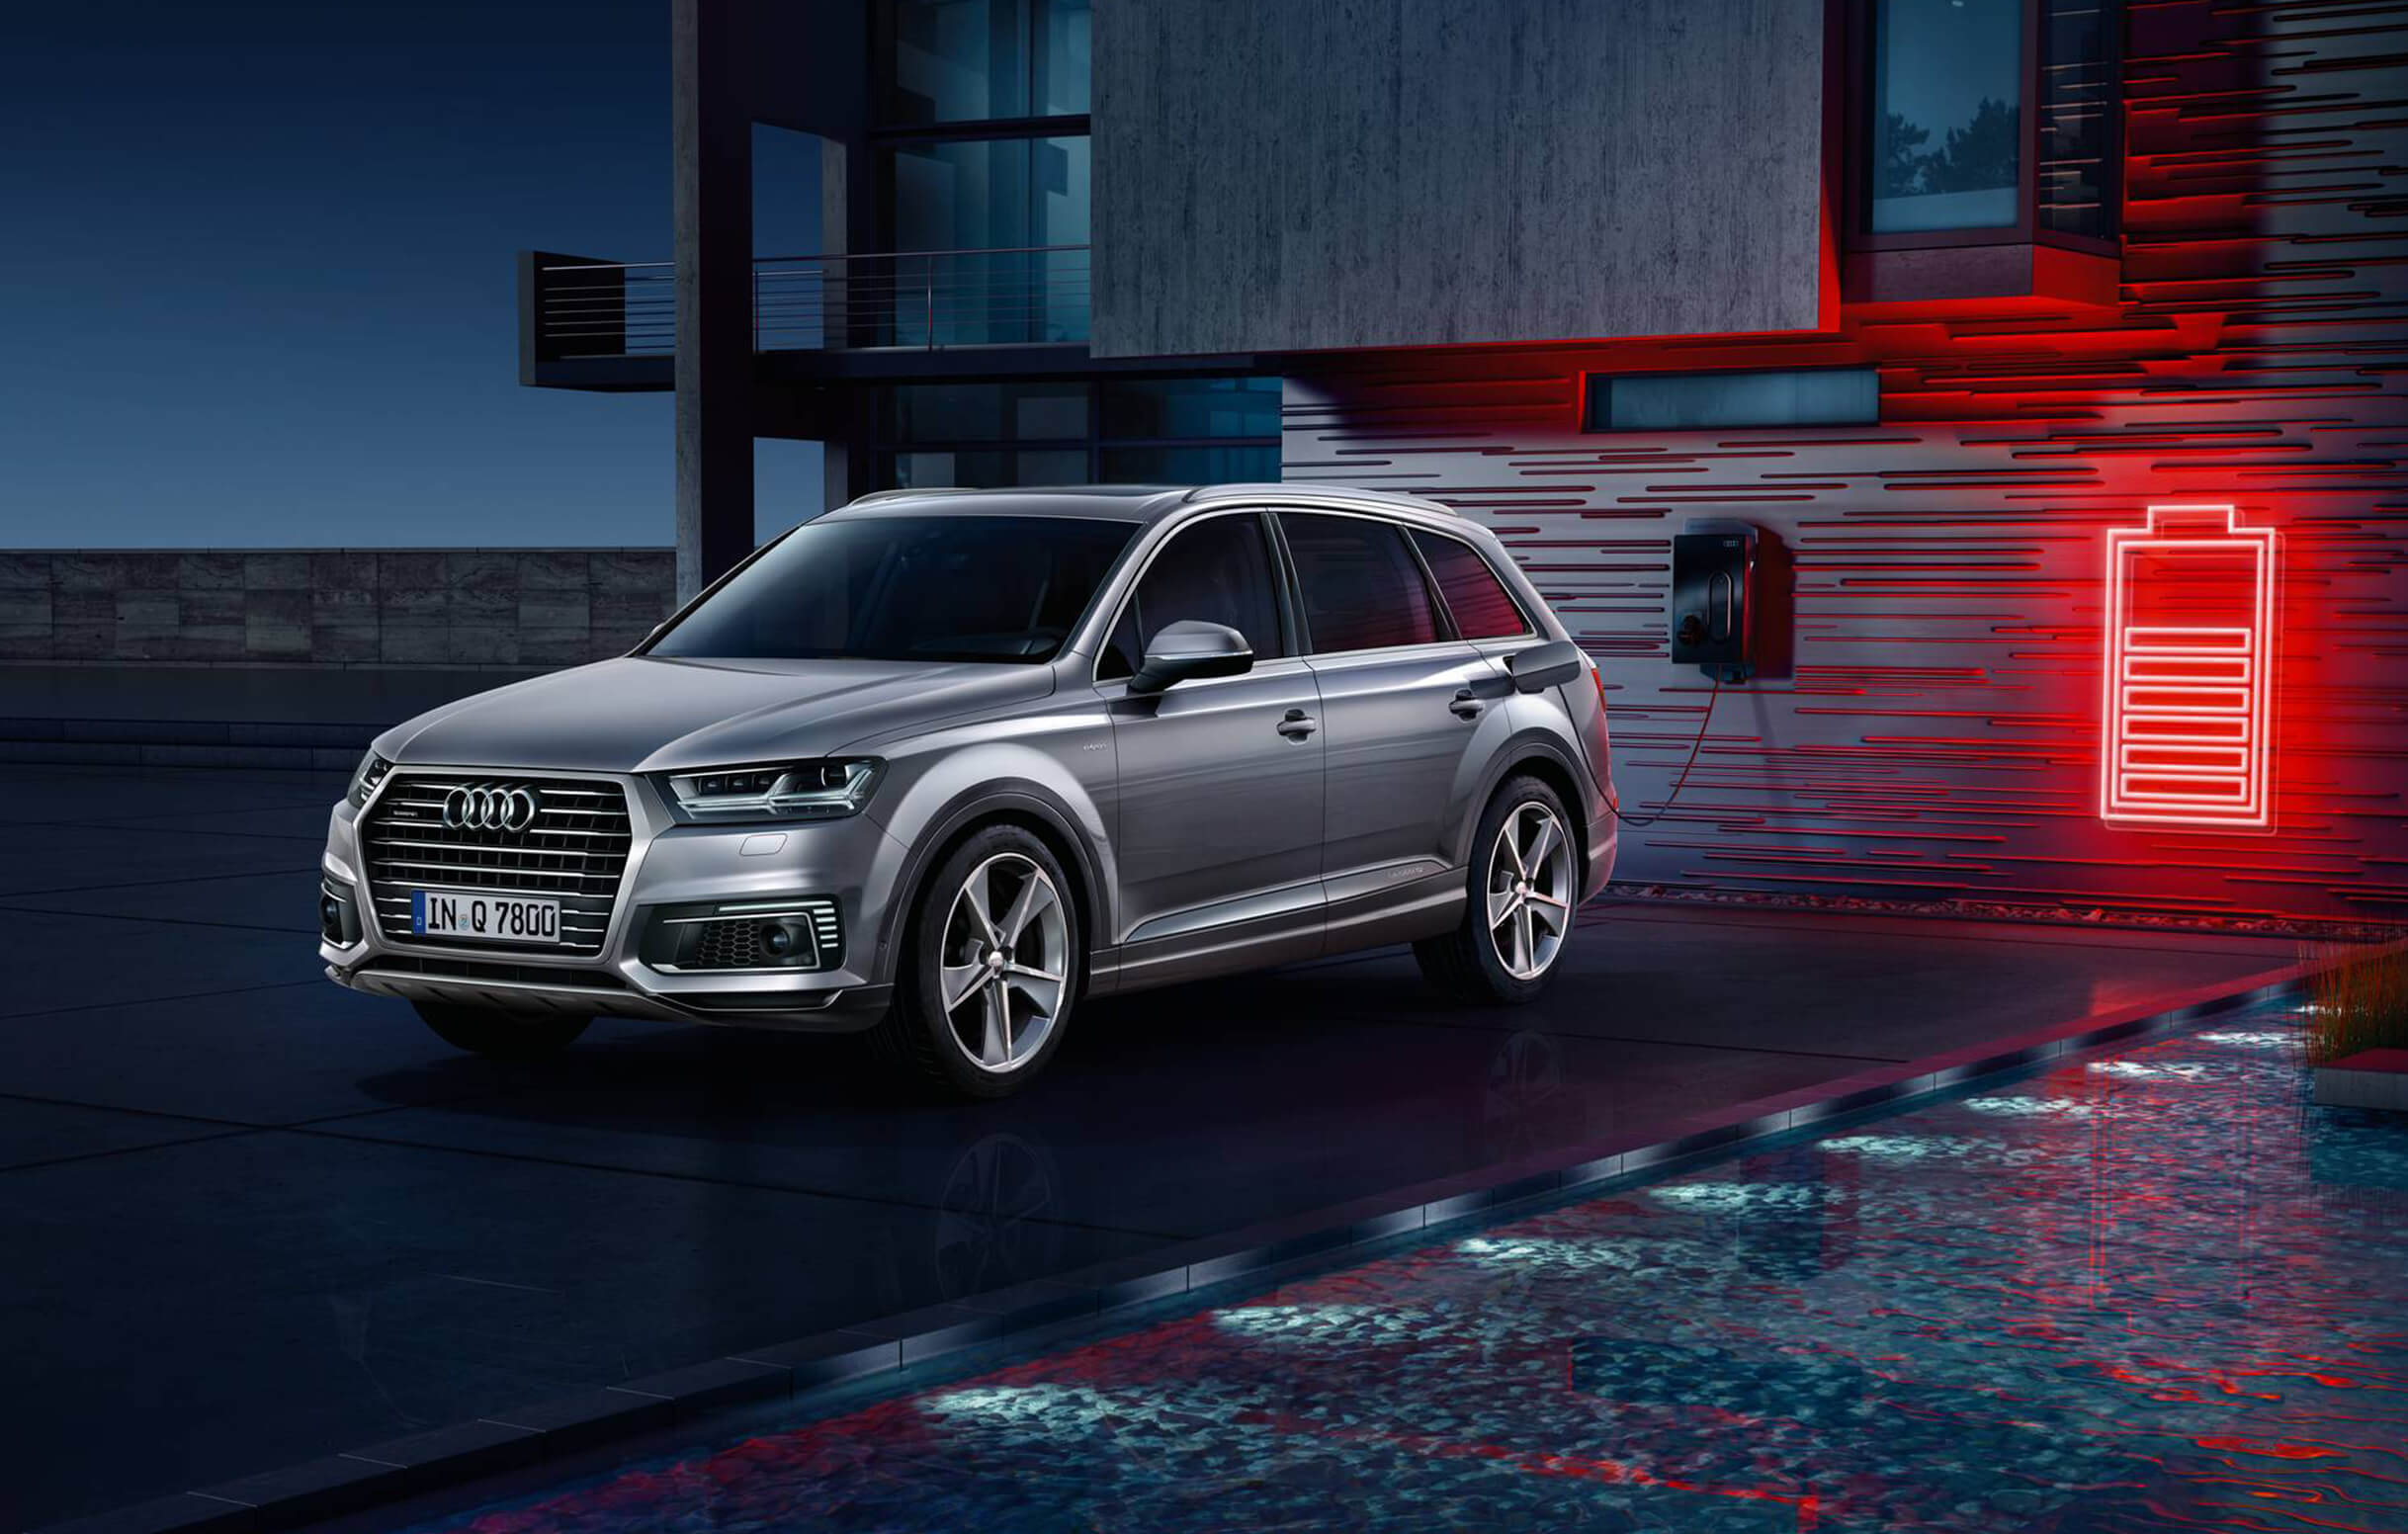 2436x1552_Q7_etron_side.jpg